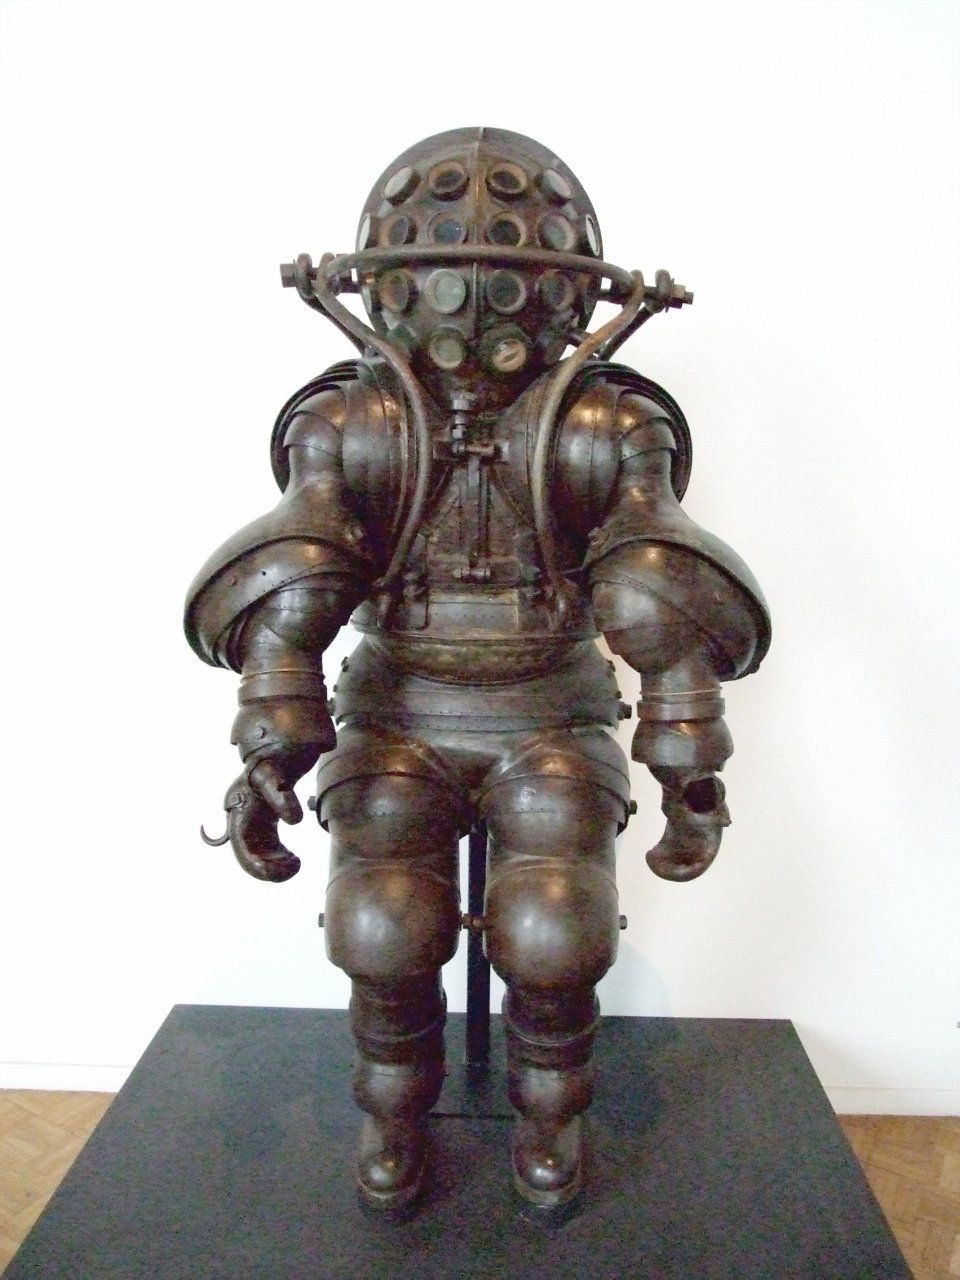 19th century french deep sea diving suit it weighs 800